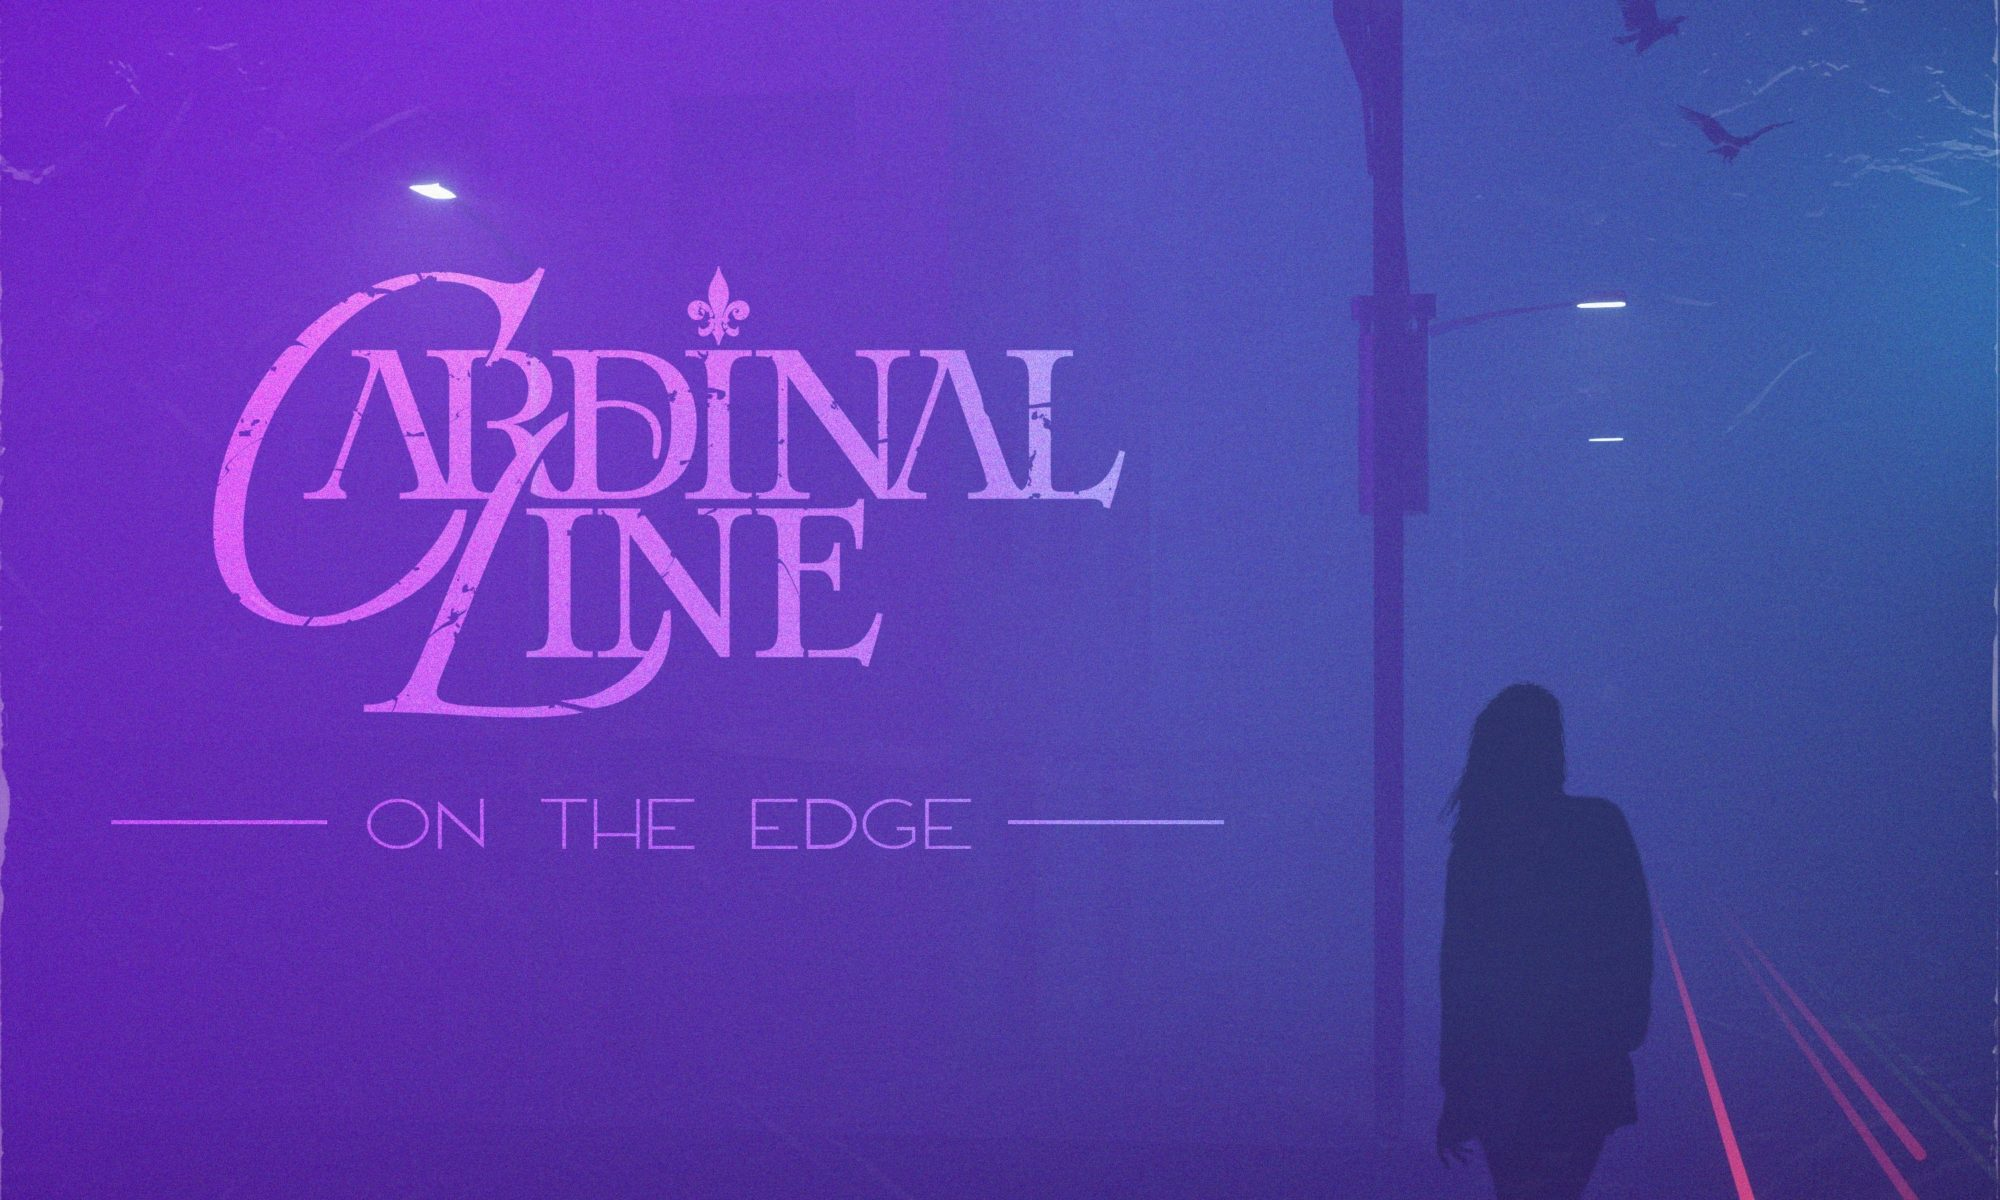 Cardinal Line - Official Website